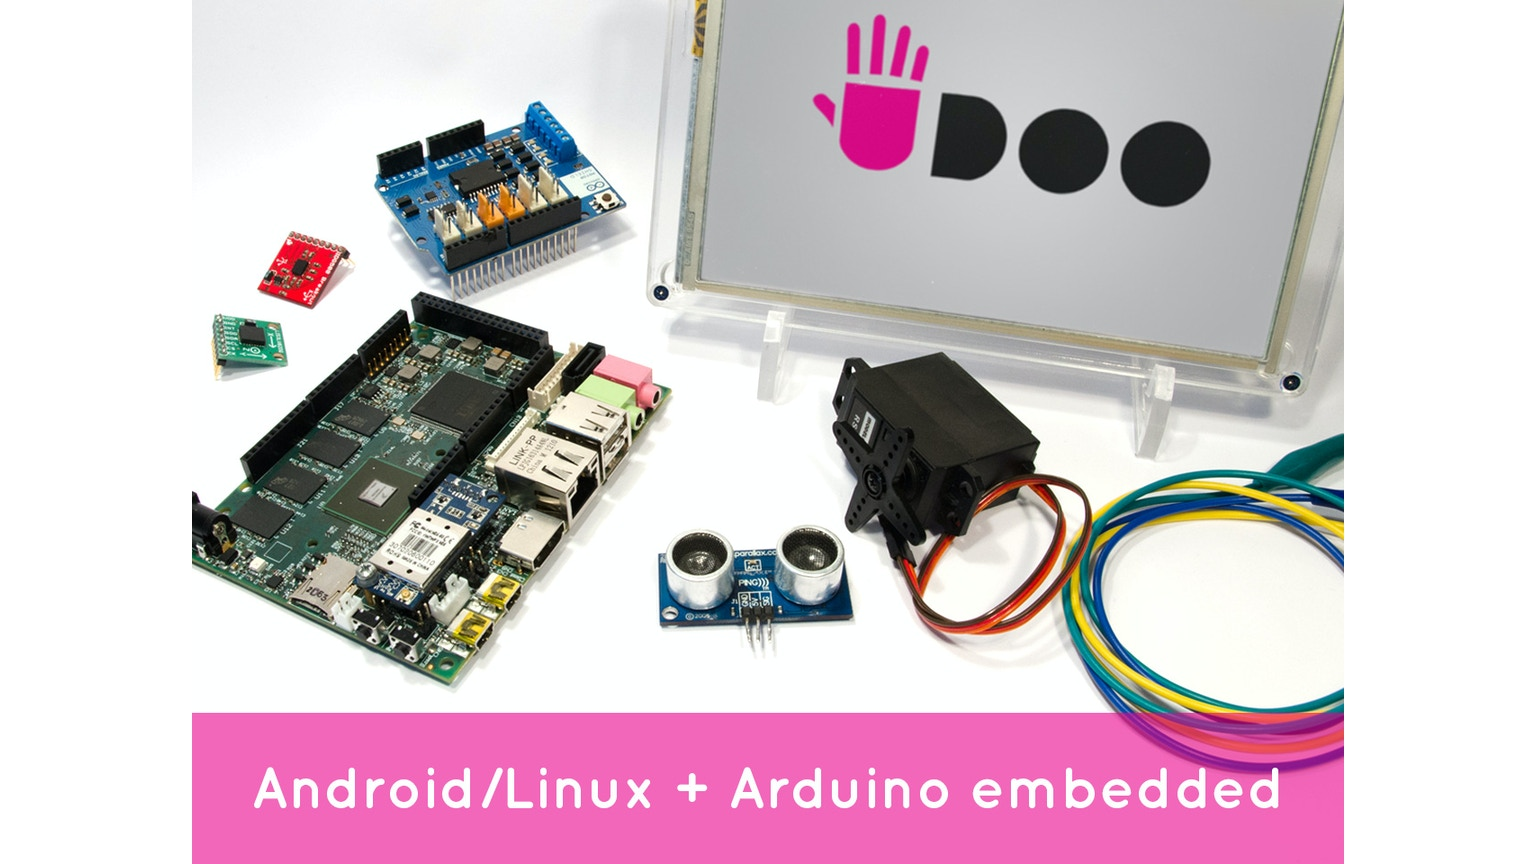 Udoo android linux arduino in a tiny single board